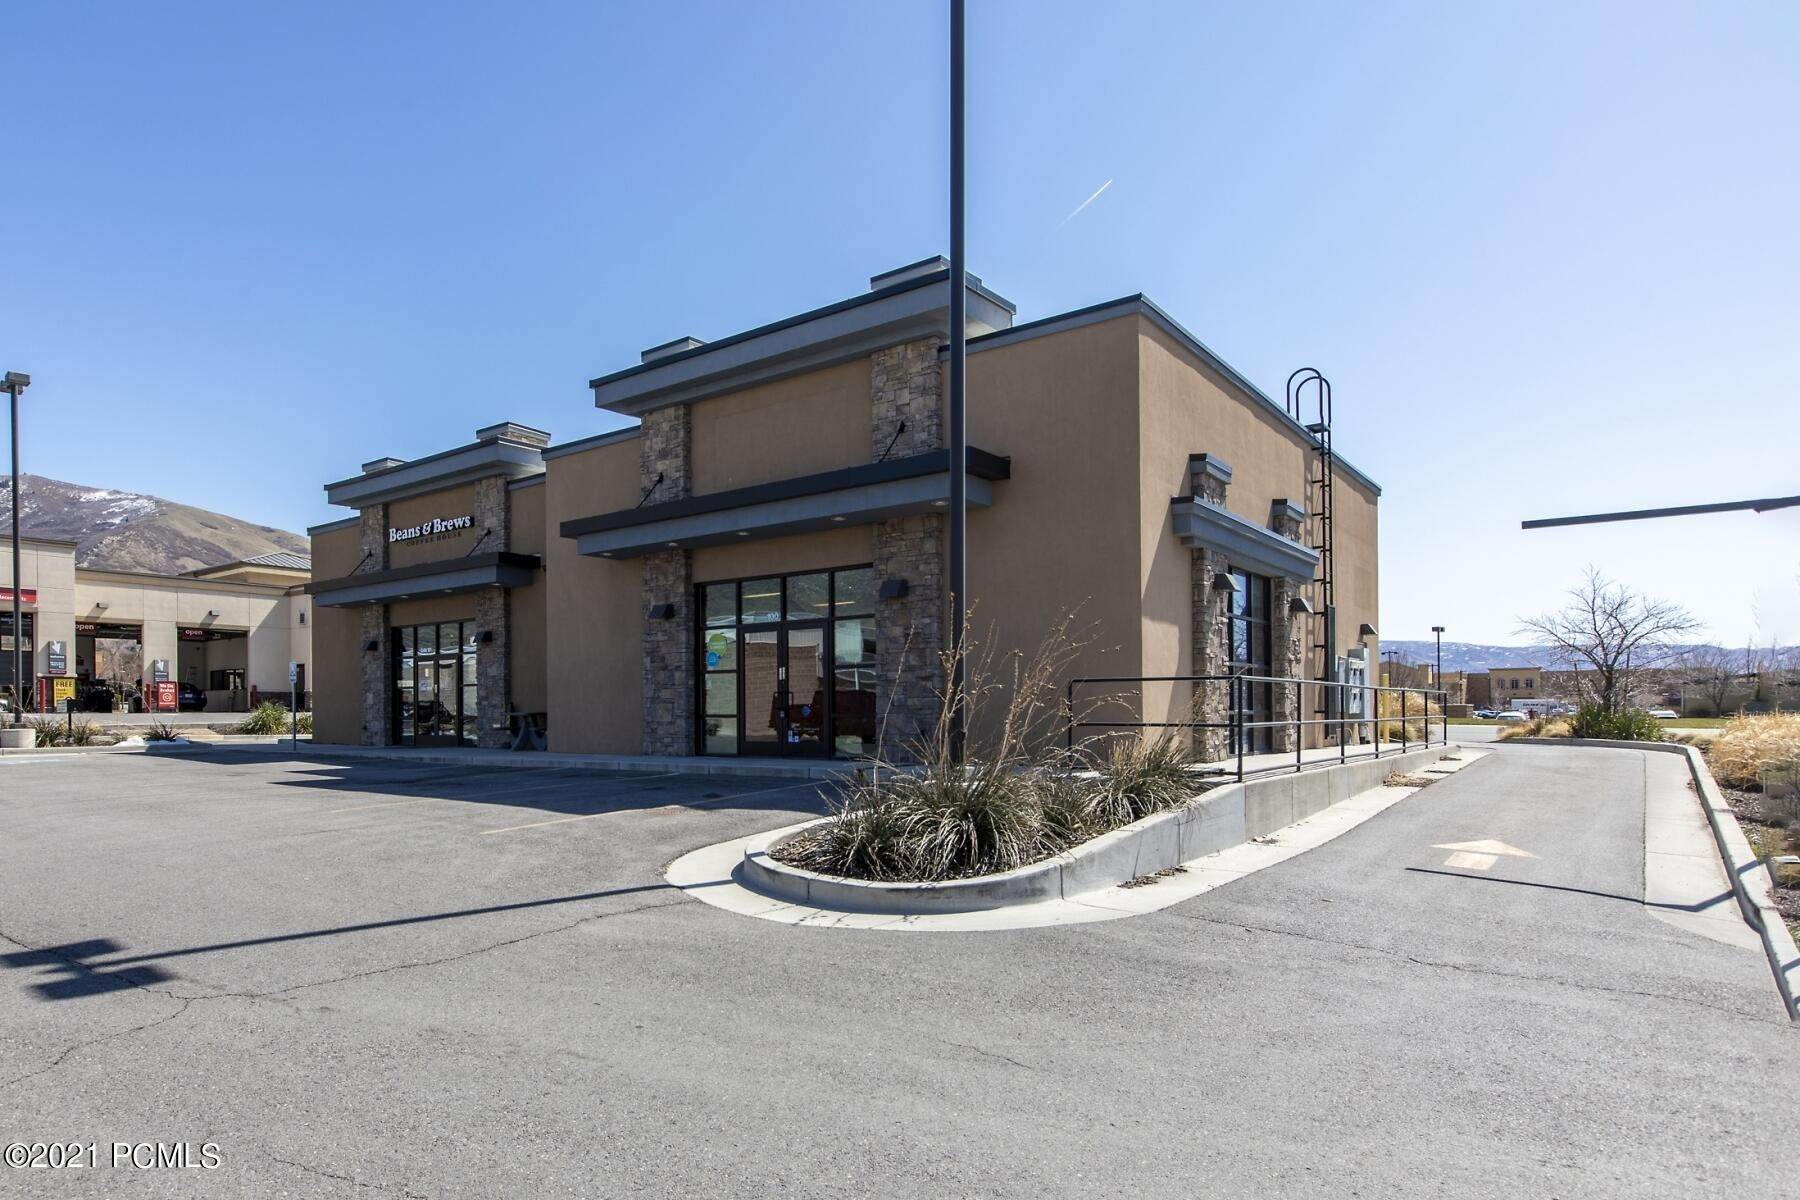 Comm / Ind Lease at 330 400 Centerville, Utah 84014 United States